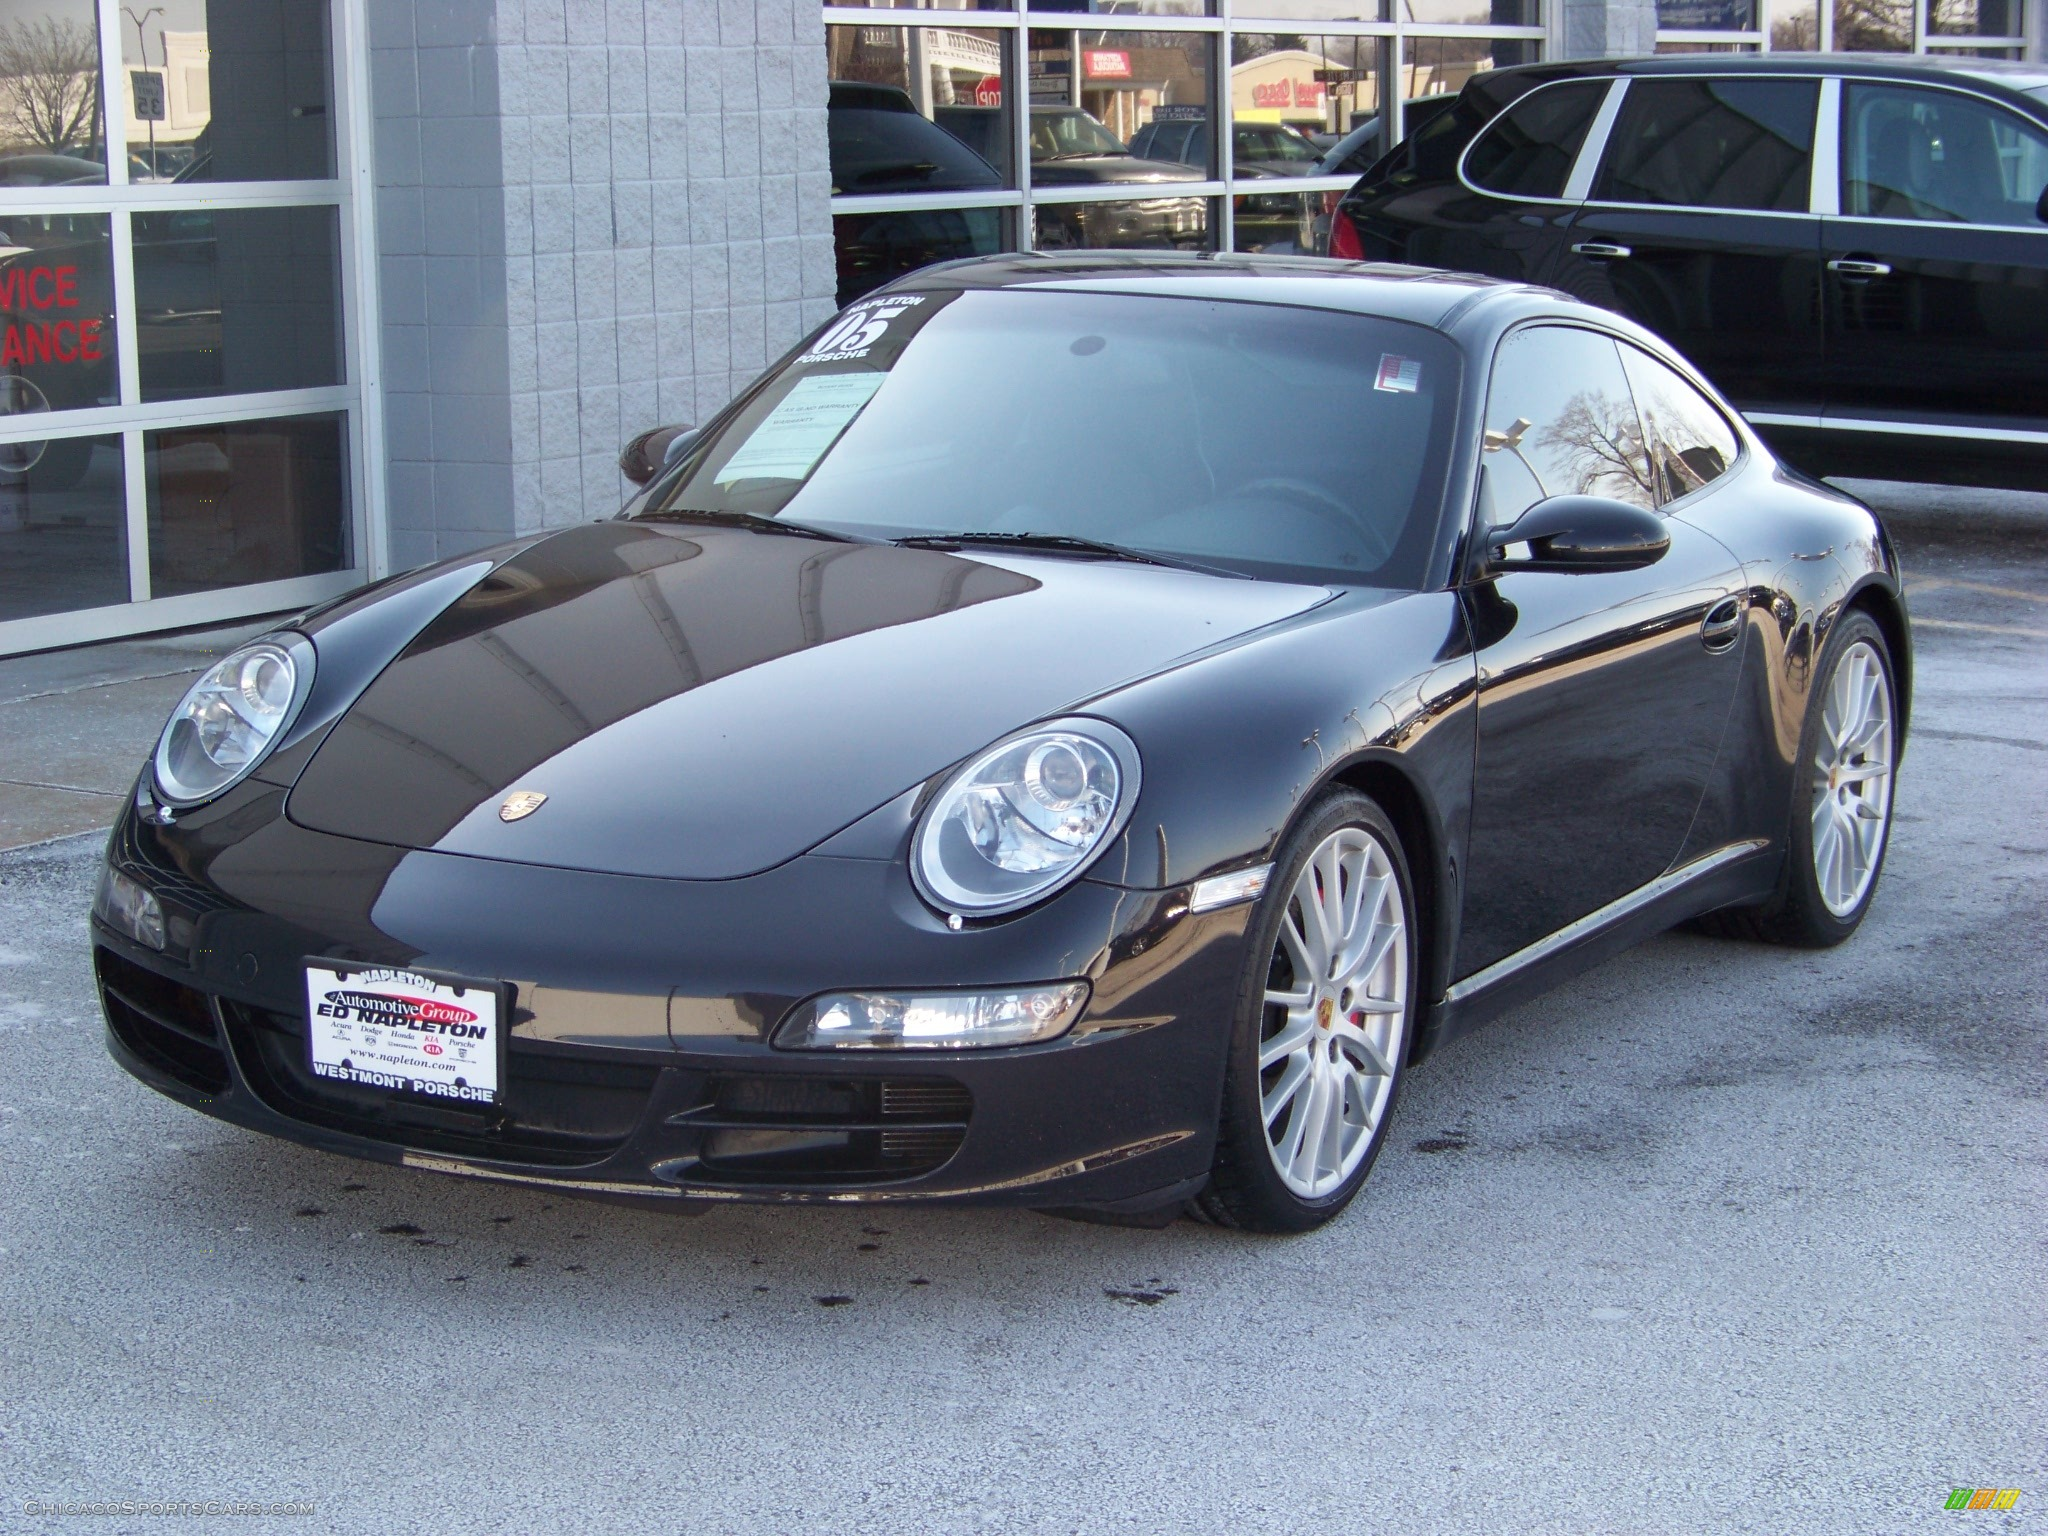 2005 Porsche 911 Carrera S Coupe in Basalt Black Metallic ...